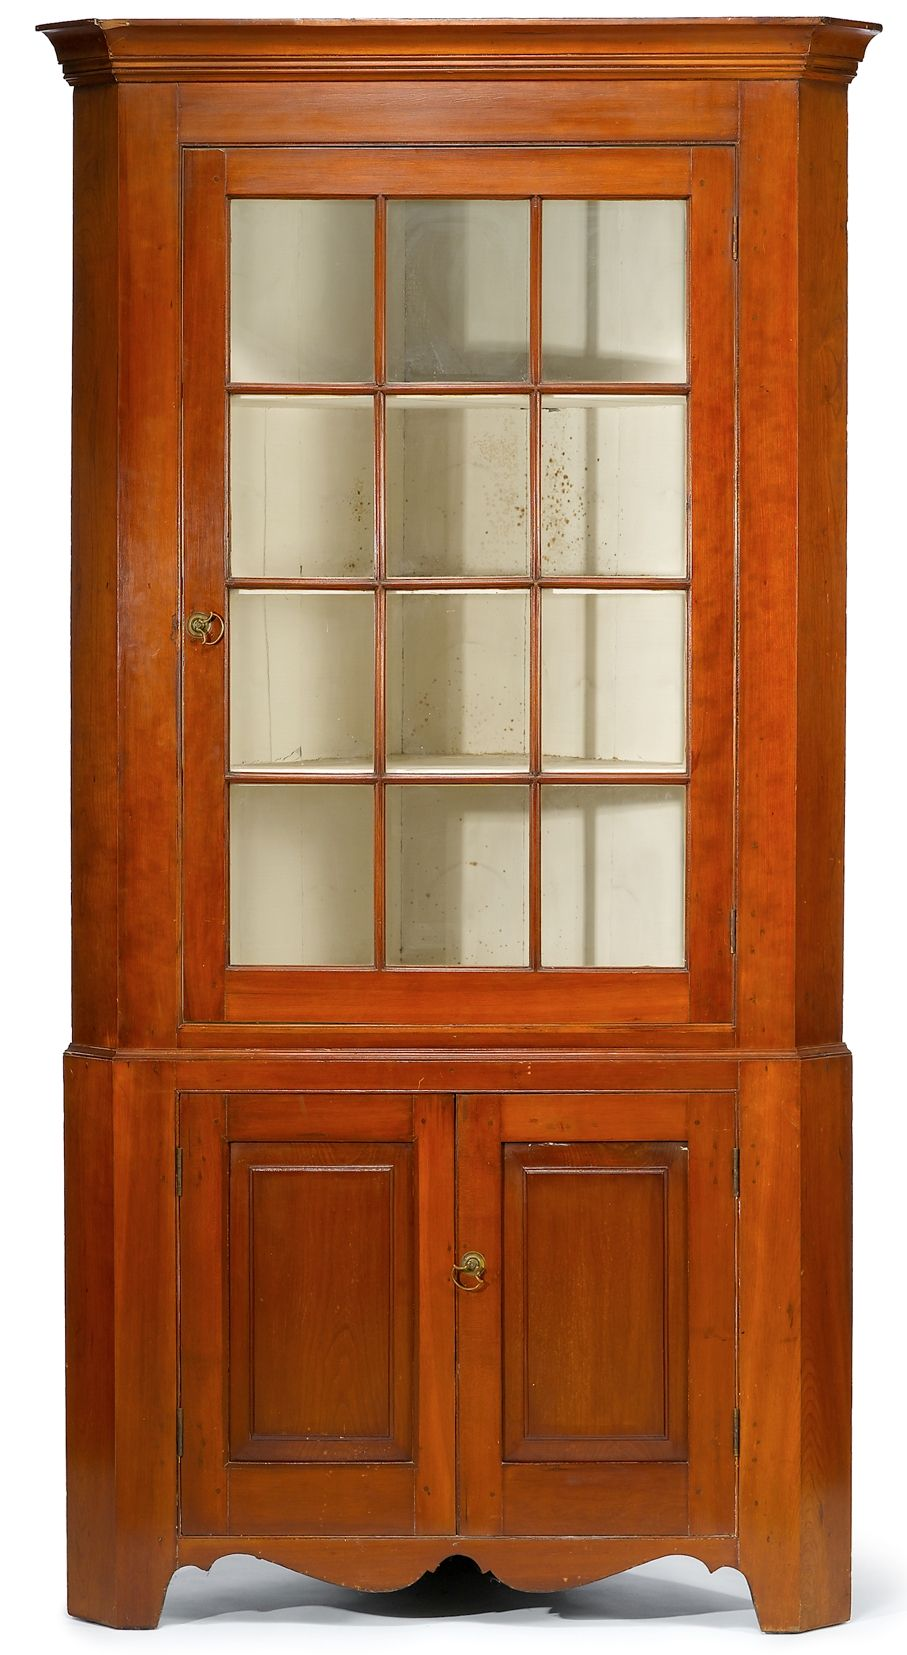 Enlarge Photo - Antiques.com ClassifiedsAntiques » Antique Furniture »  Antique - Antique Corner Cupboards - Antique Corner Cupboard For Sale Antique Furniture